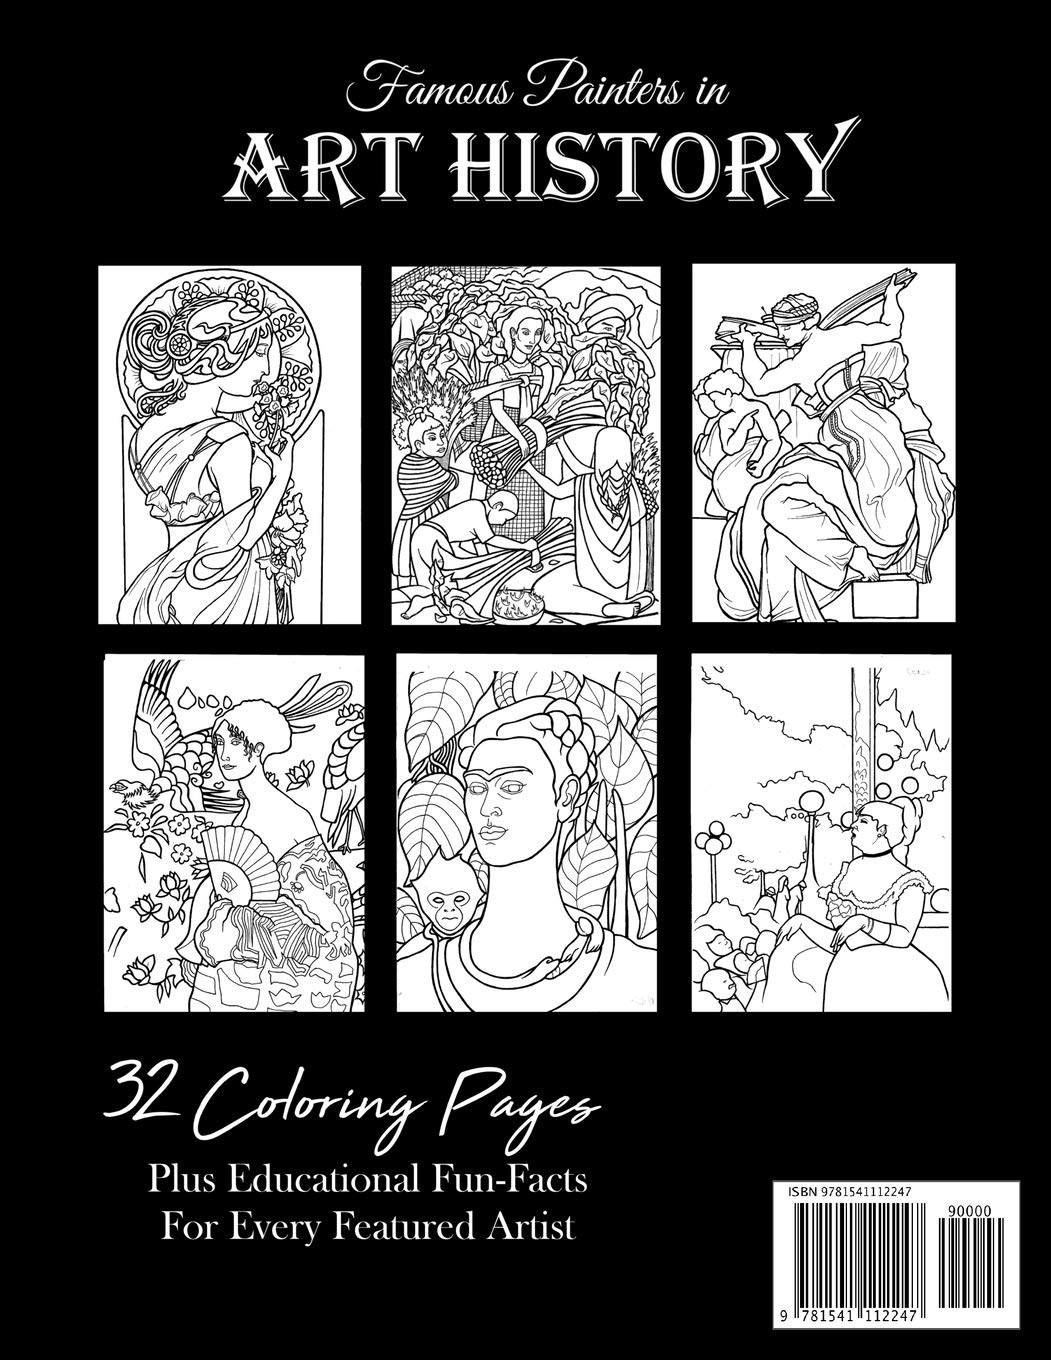 Famous Painters In Art History An Educational Coloring Book Rush Davina 9781541112247 Amazon Com Books